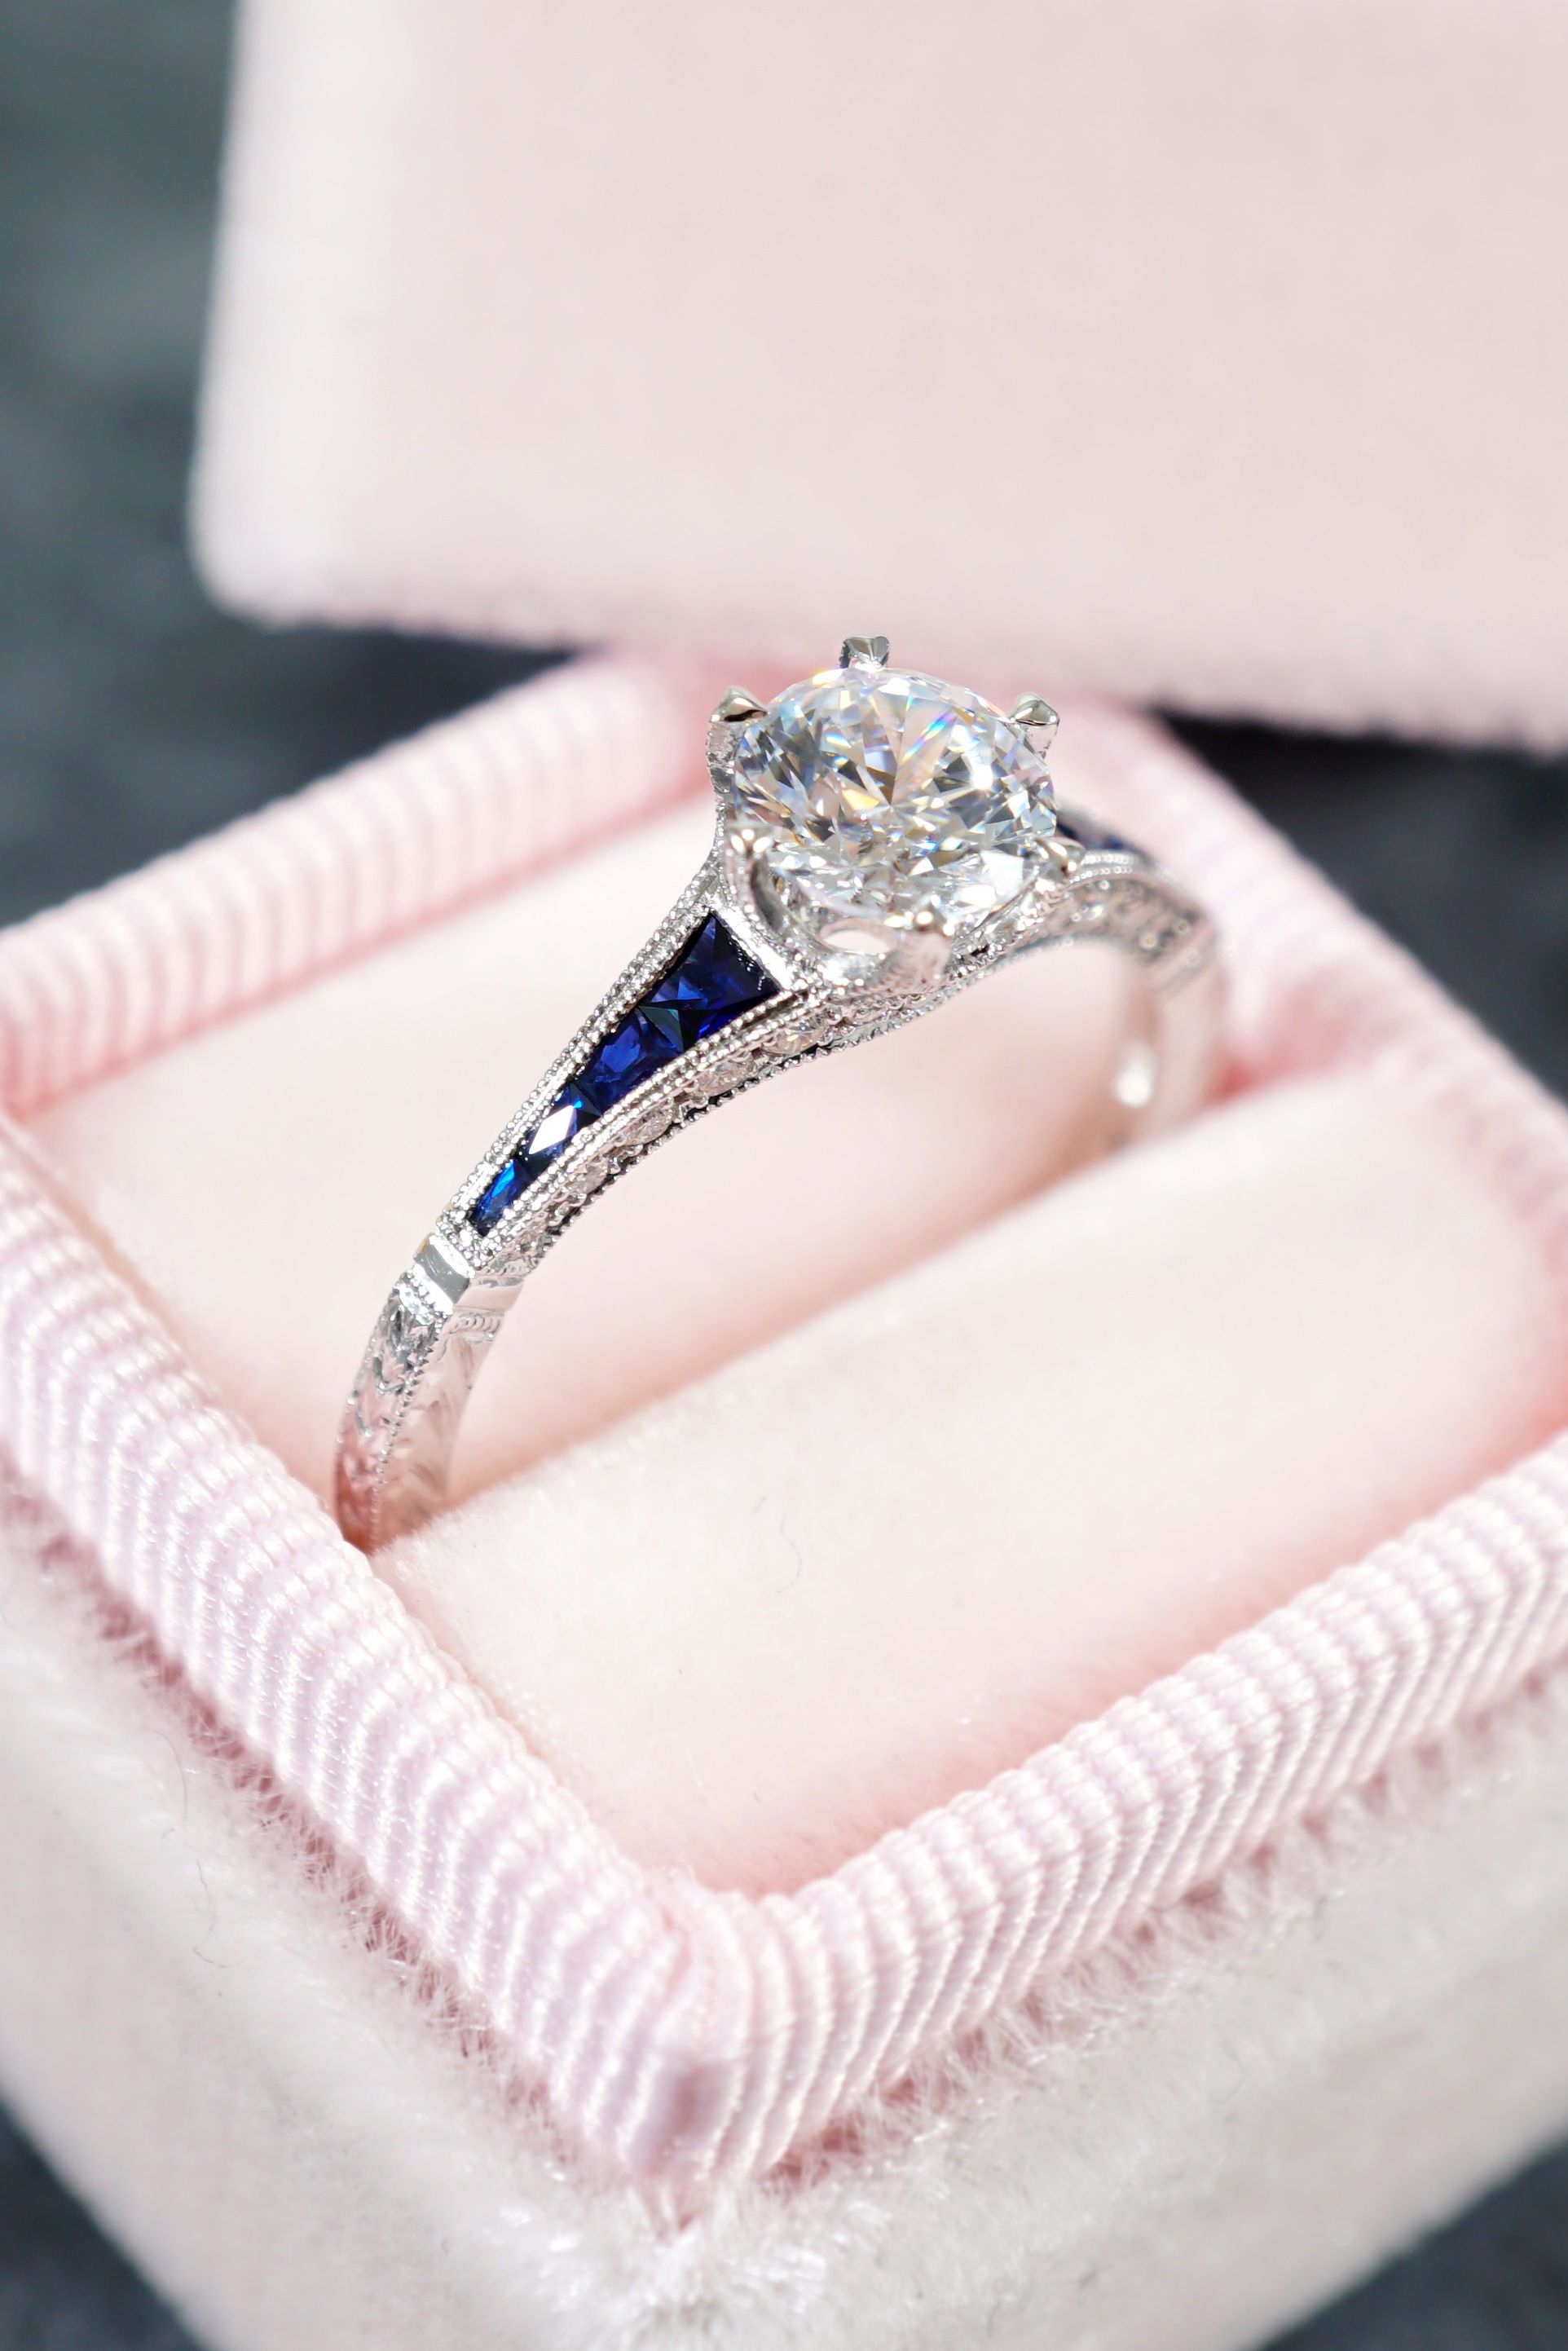 Blue Sapphire And Diamond Engagement Ring | Diamond And Within Most Popular Round Brilliant Single Diamond Wedding Bands (View 19 of 25)